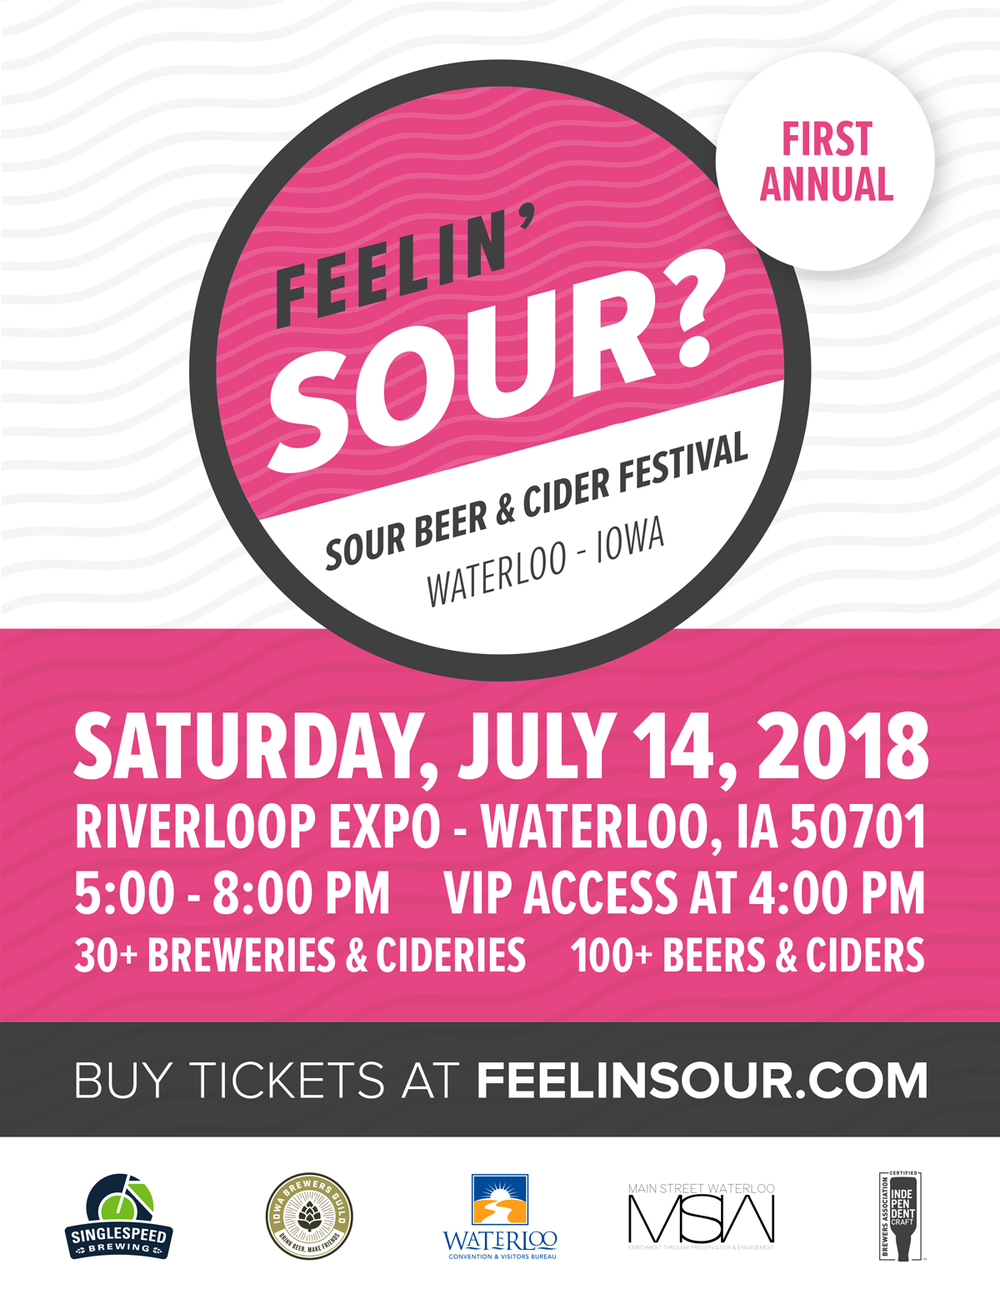 Feelin-sour-flyer